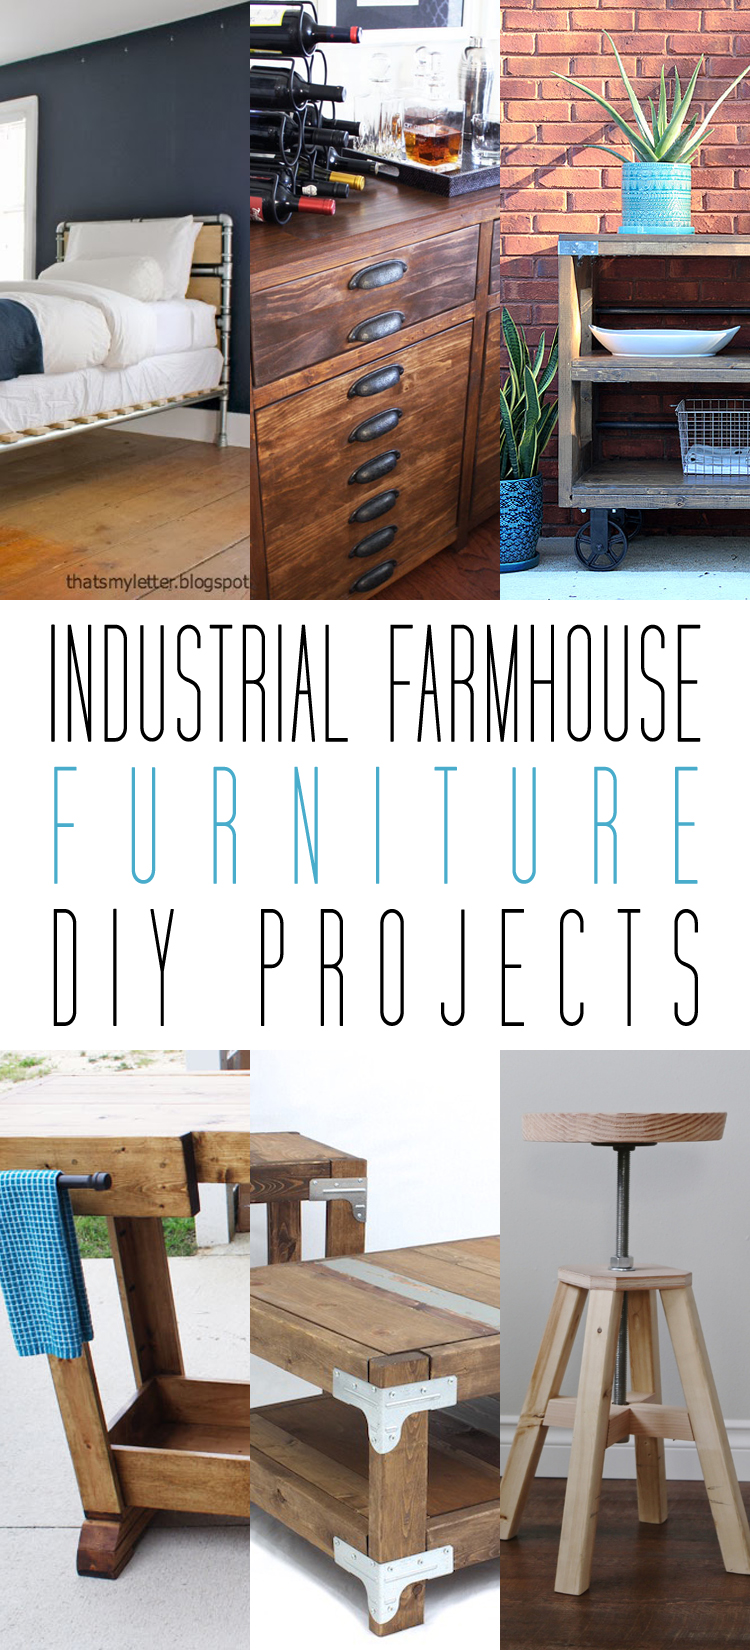 Industrial farmhouse furniture diy projects the cottage for Industrial diy projects